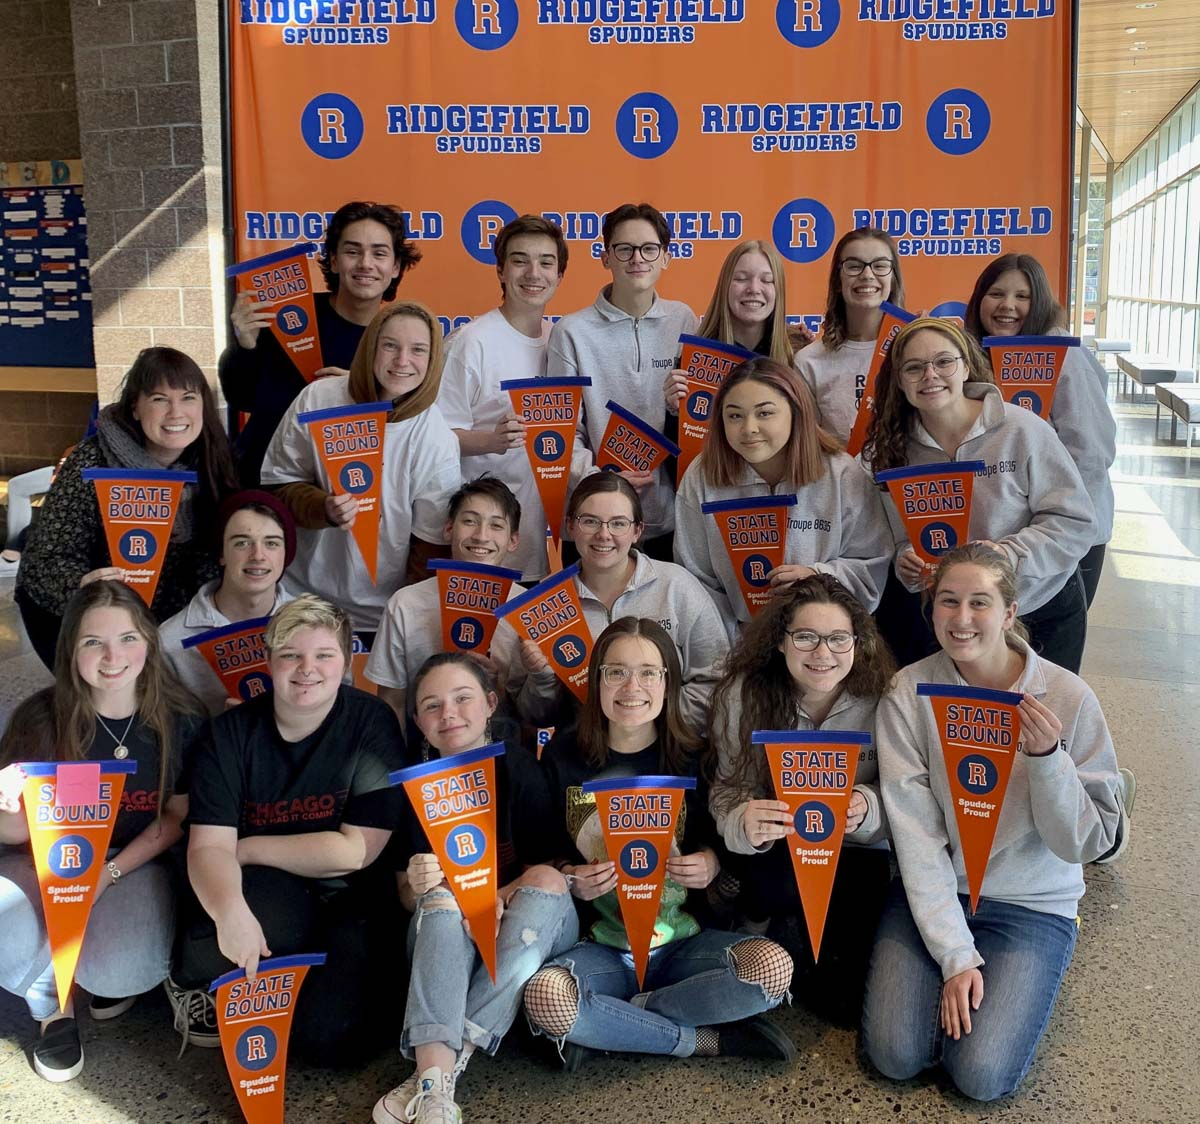 Ridgefield High School's Thespian Troupe was awarded bronze level honor status at this year's Washington State Thespian Festival competition. The troupe is now among 16 thespian troupes out of 100 in the state of Washington who have earned the prestigious status.